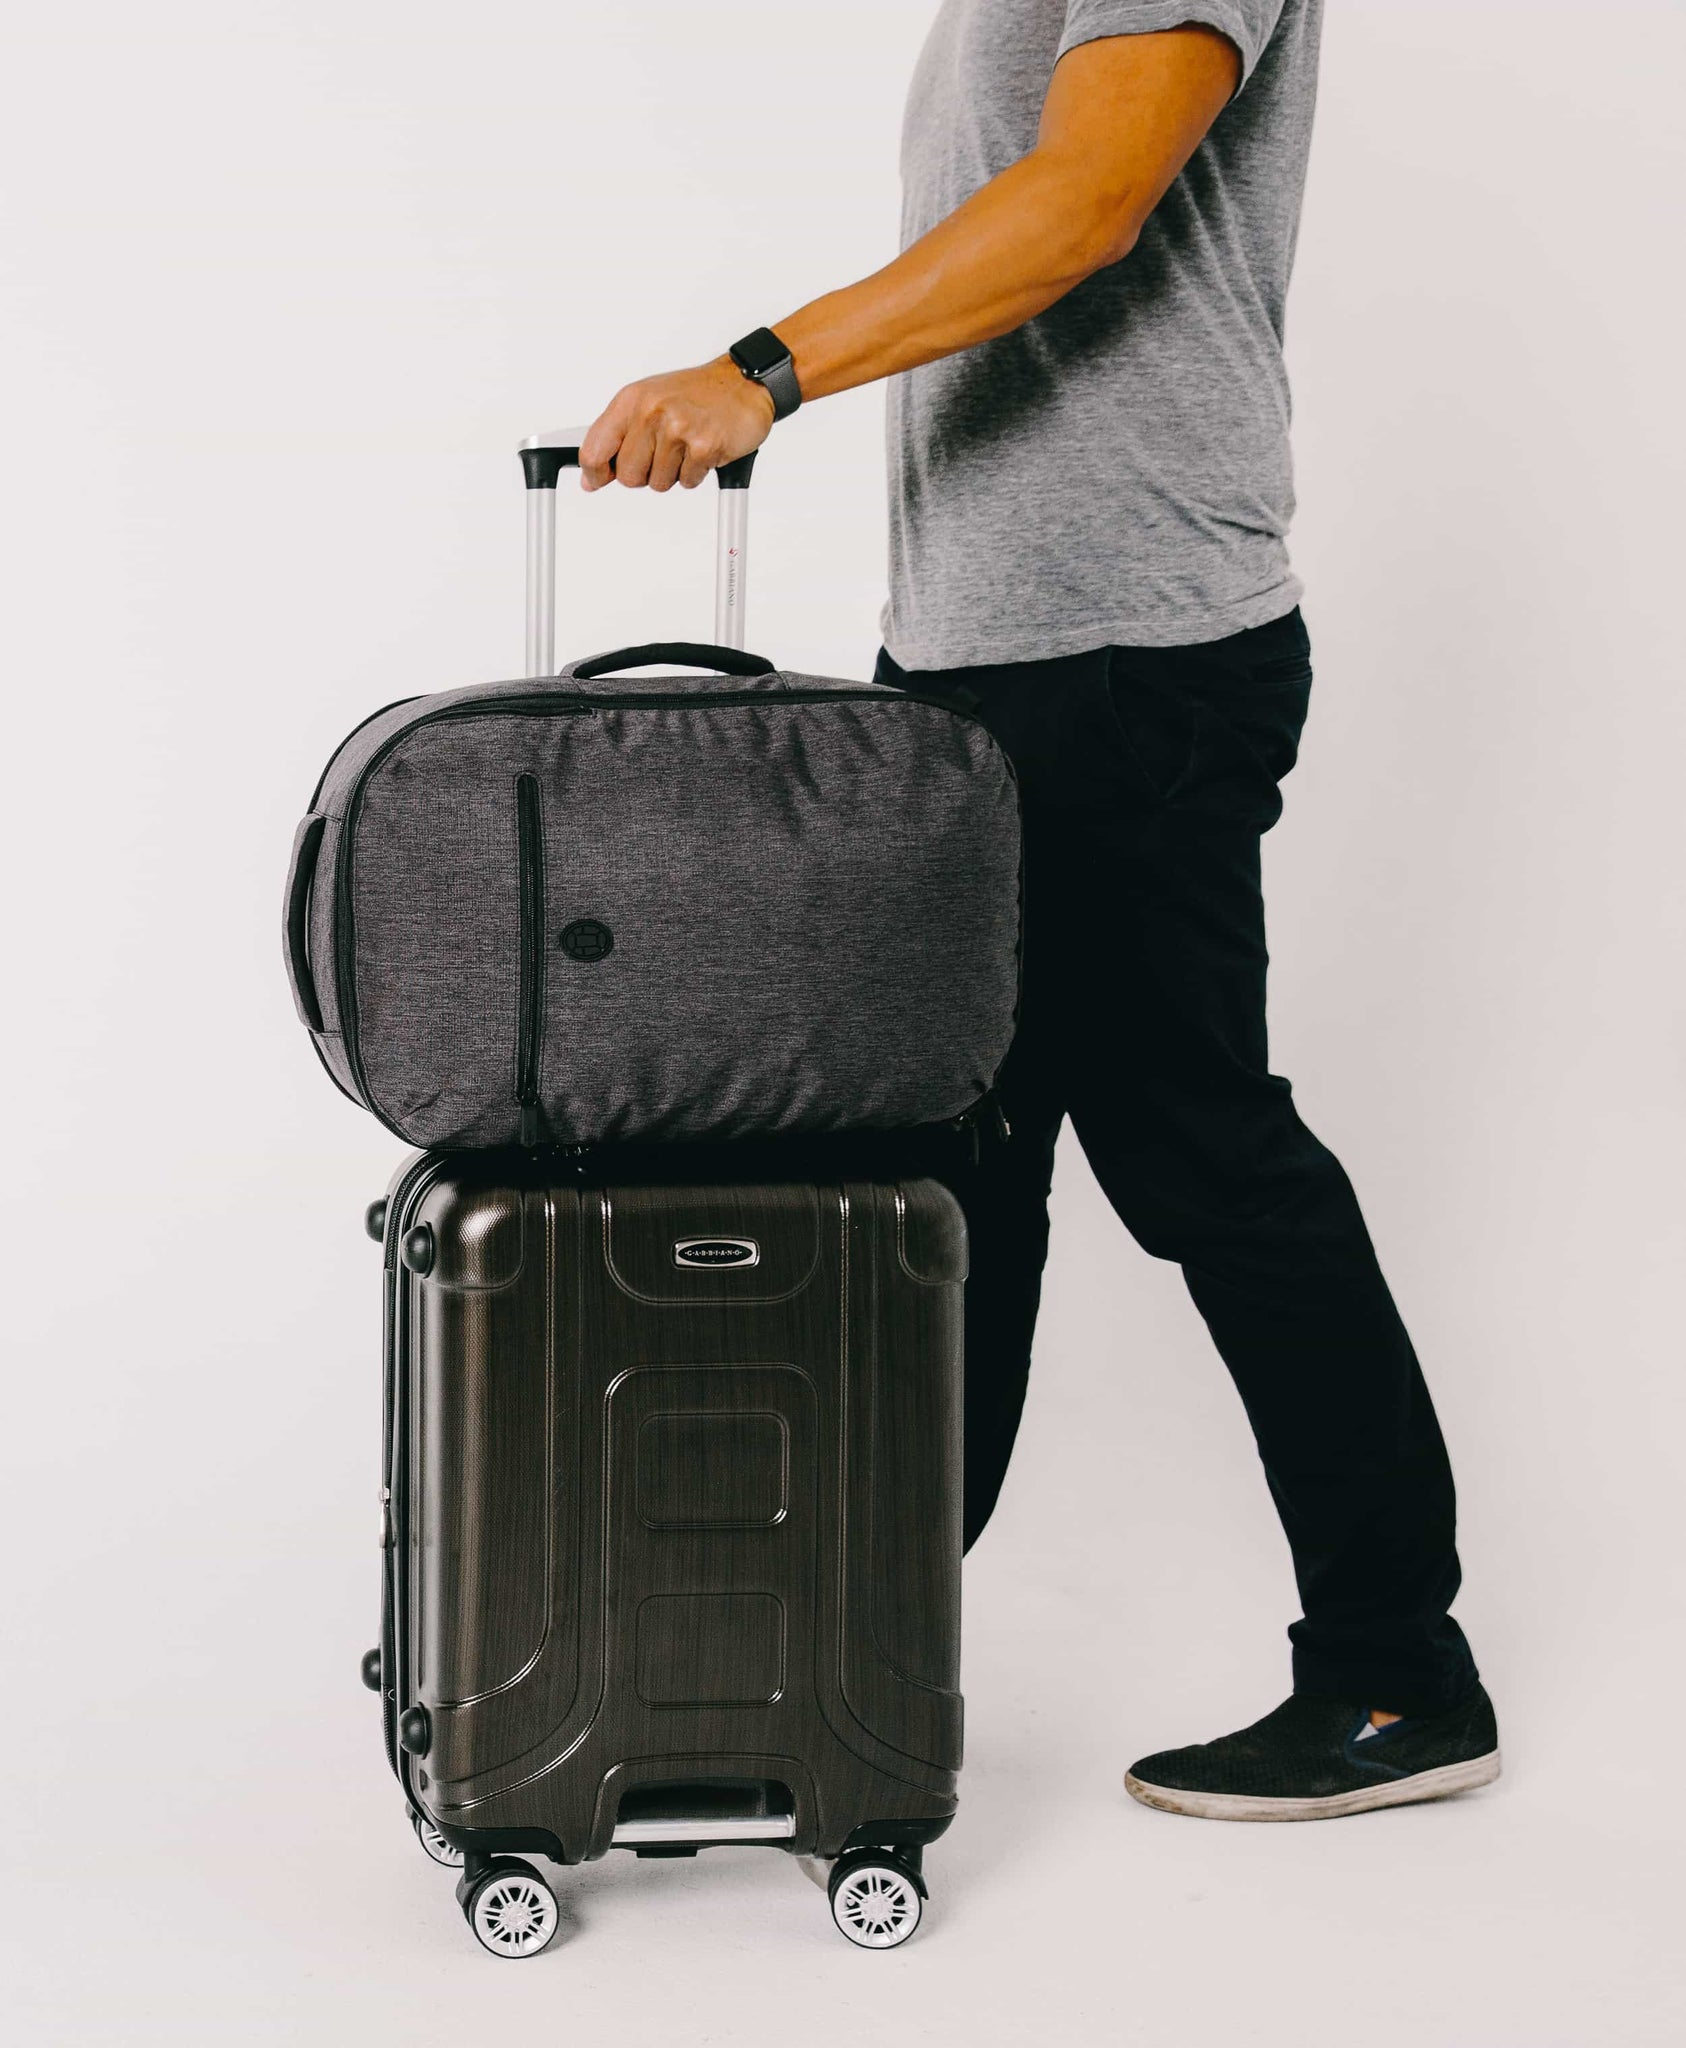 product/ Pairs with a rolling suitcase